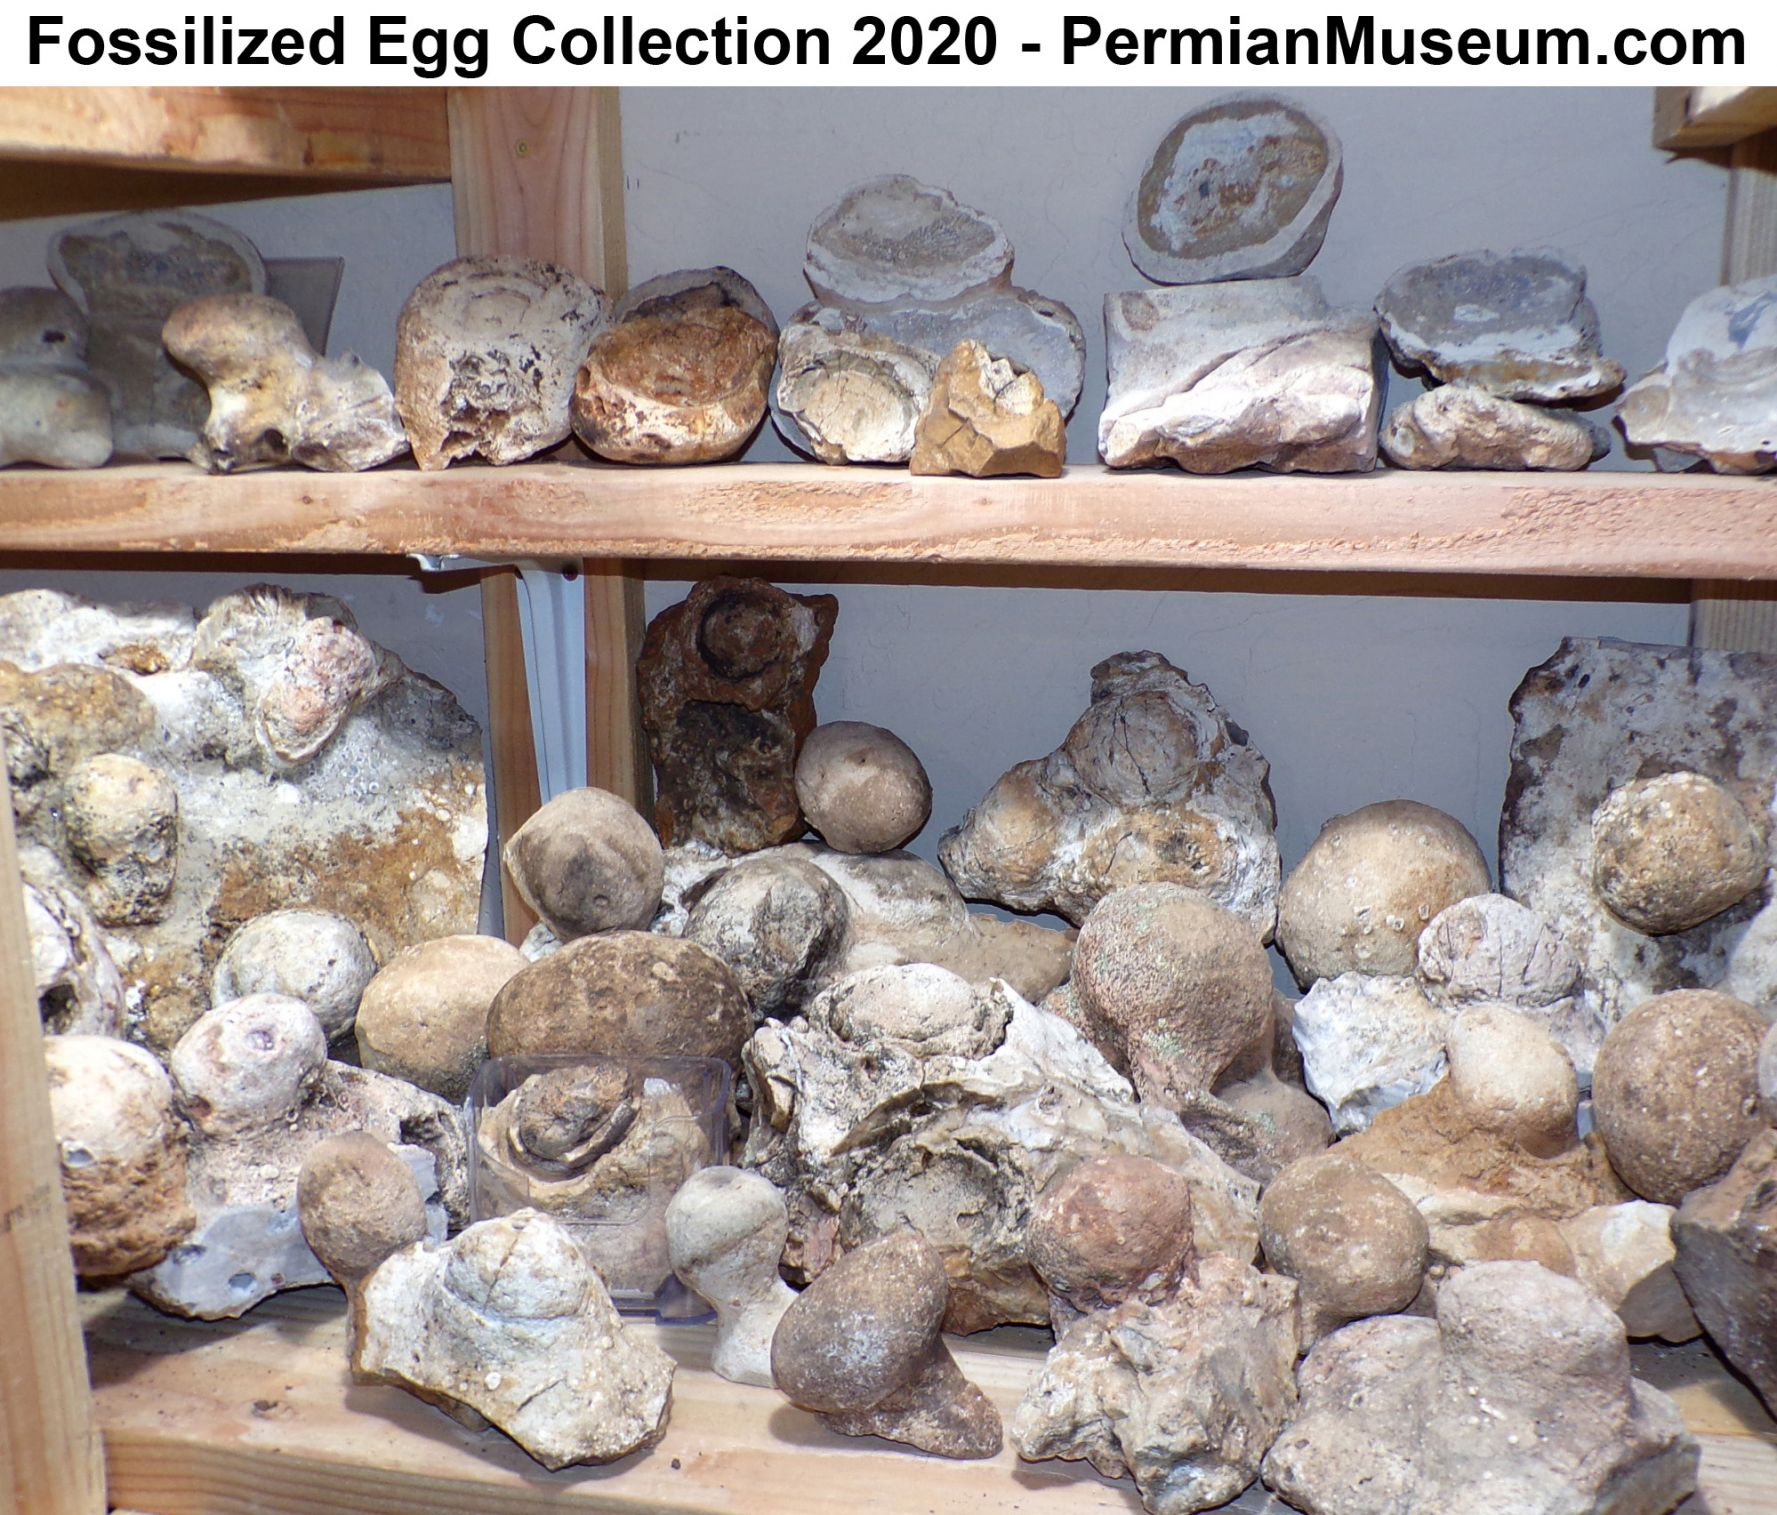 Fossilized Egg Collection 2020 - PermianMuseum.com